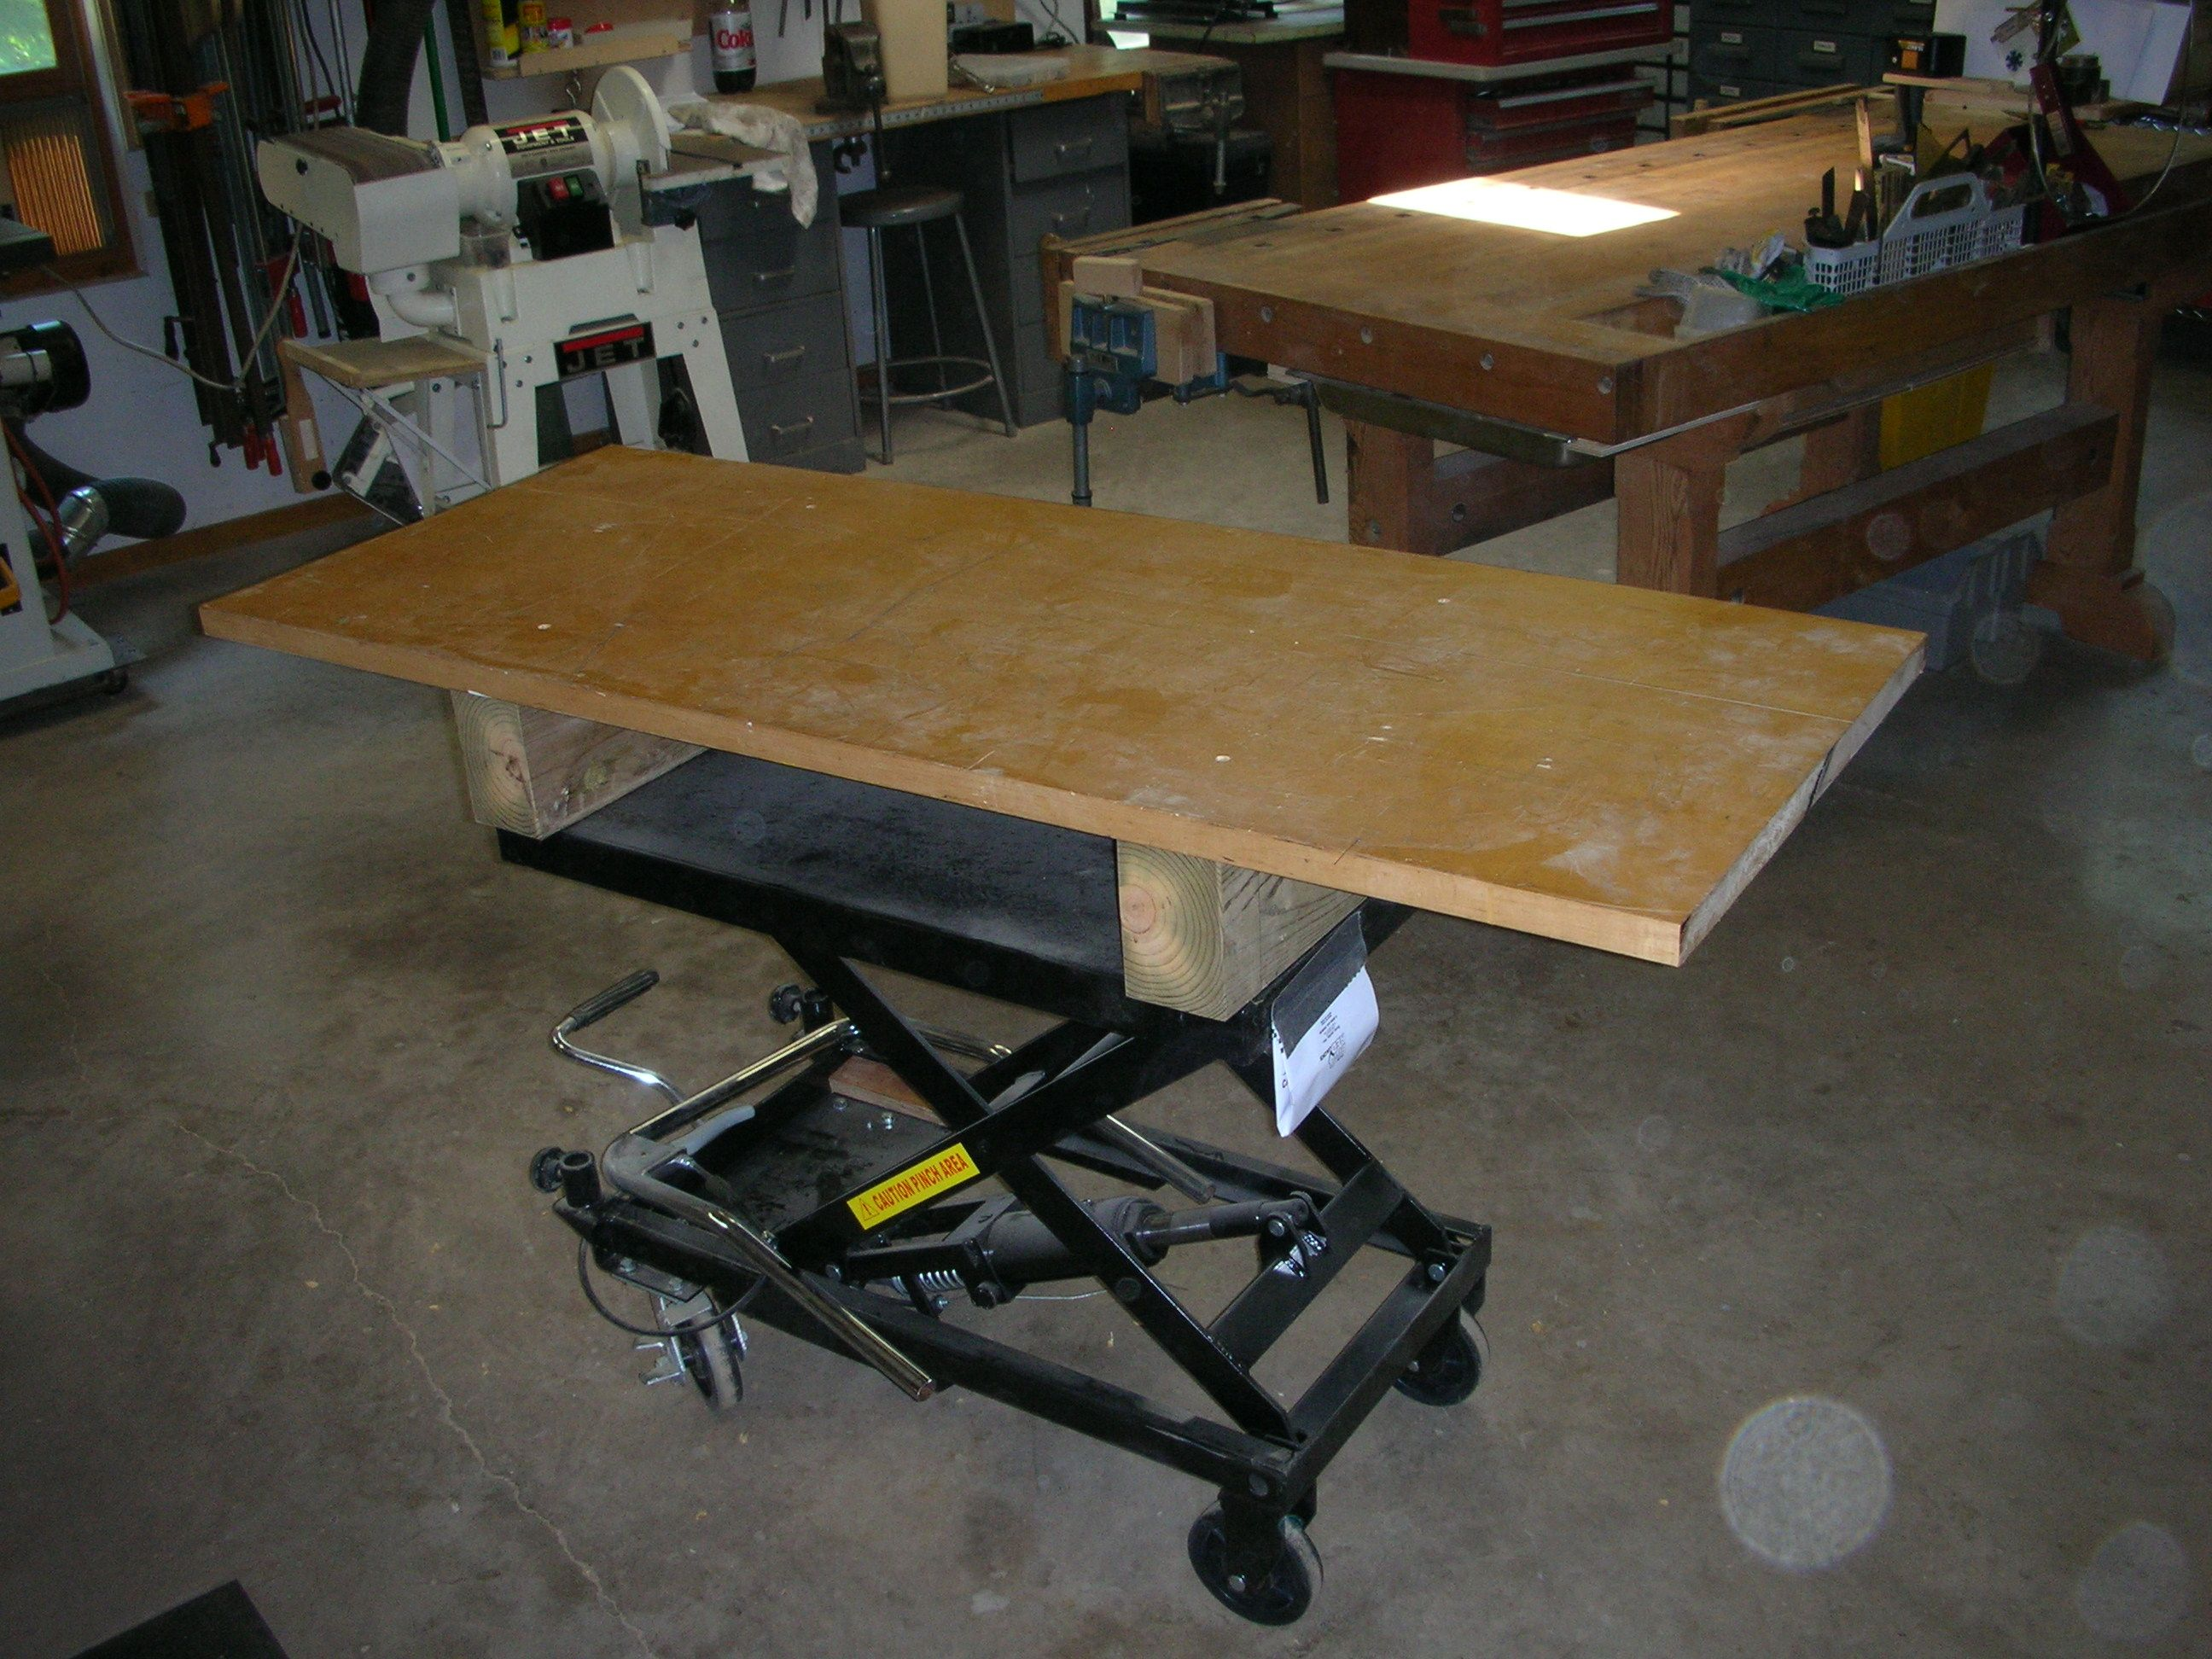 Diy Work Table Scissor Jack Adjule Height Made From Harbor Freight Motorcycle